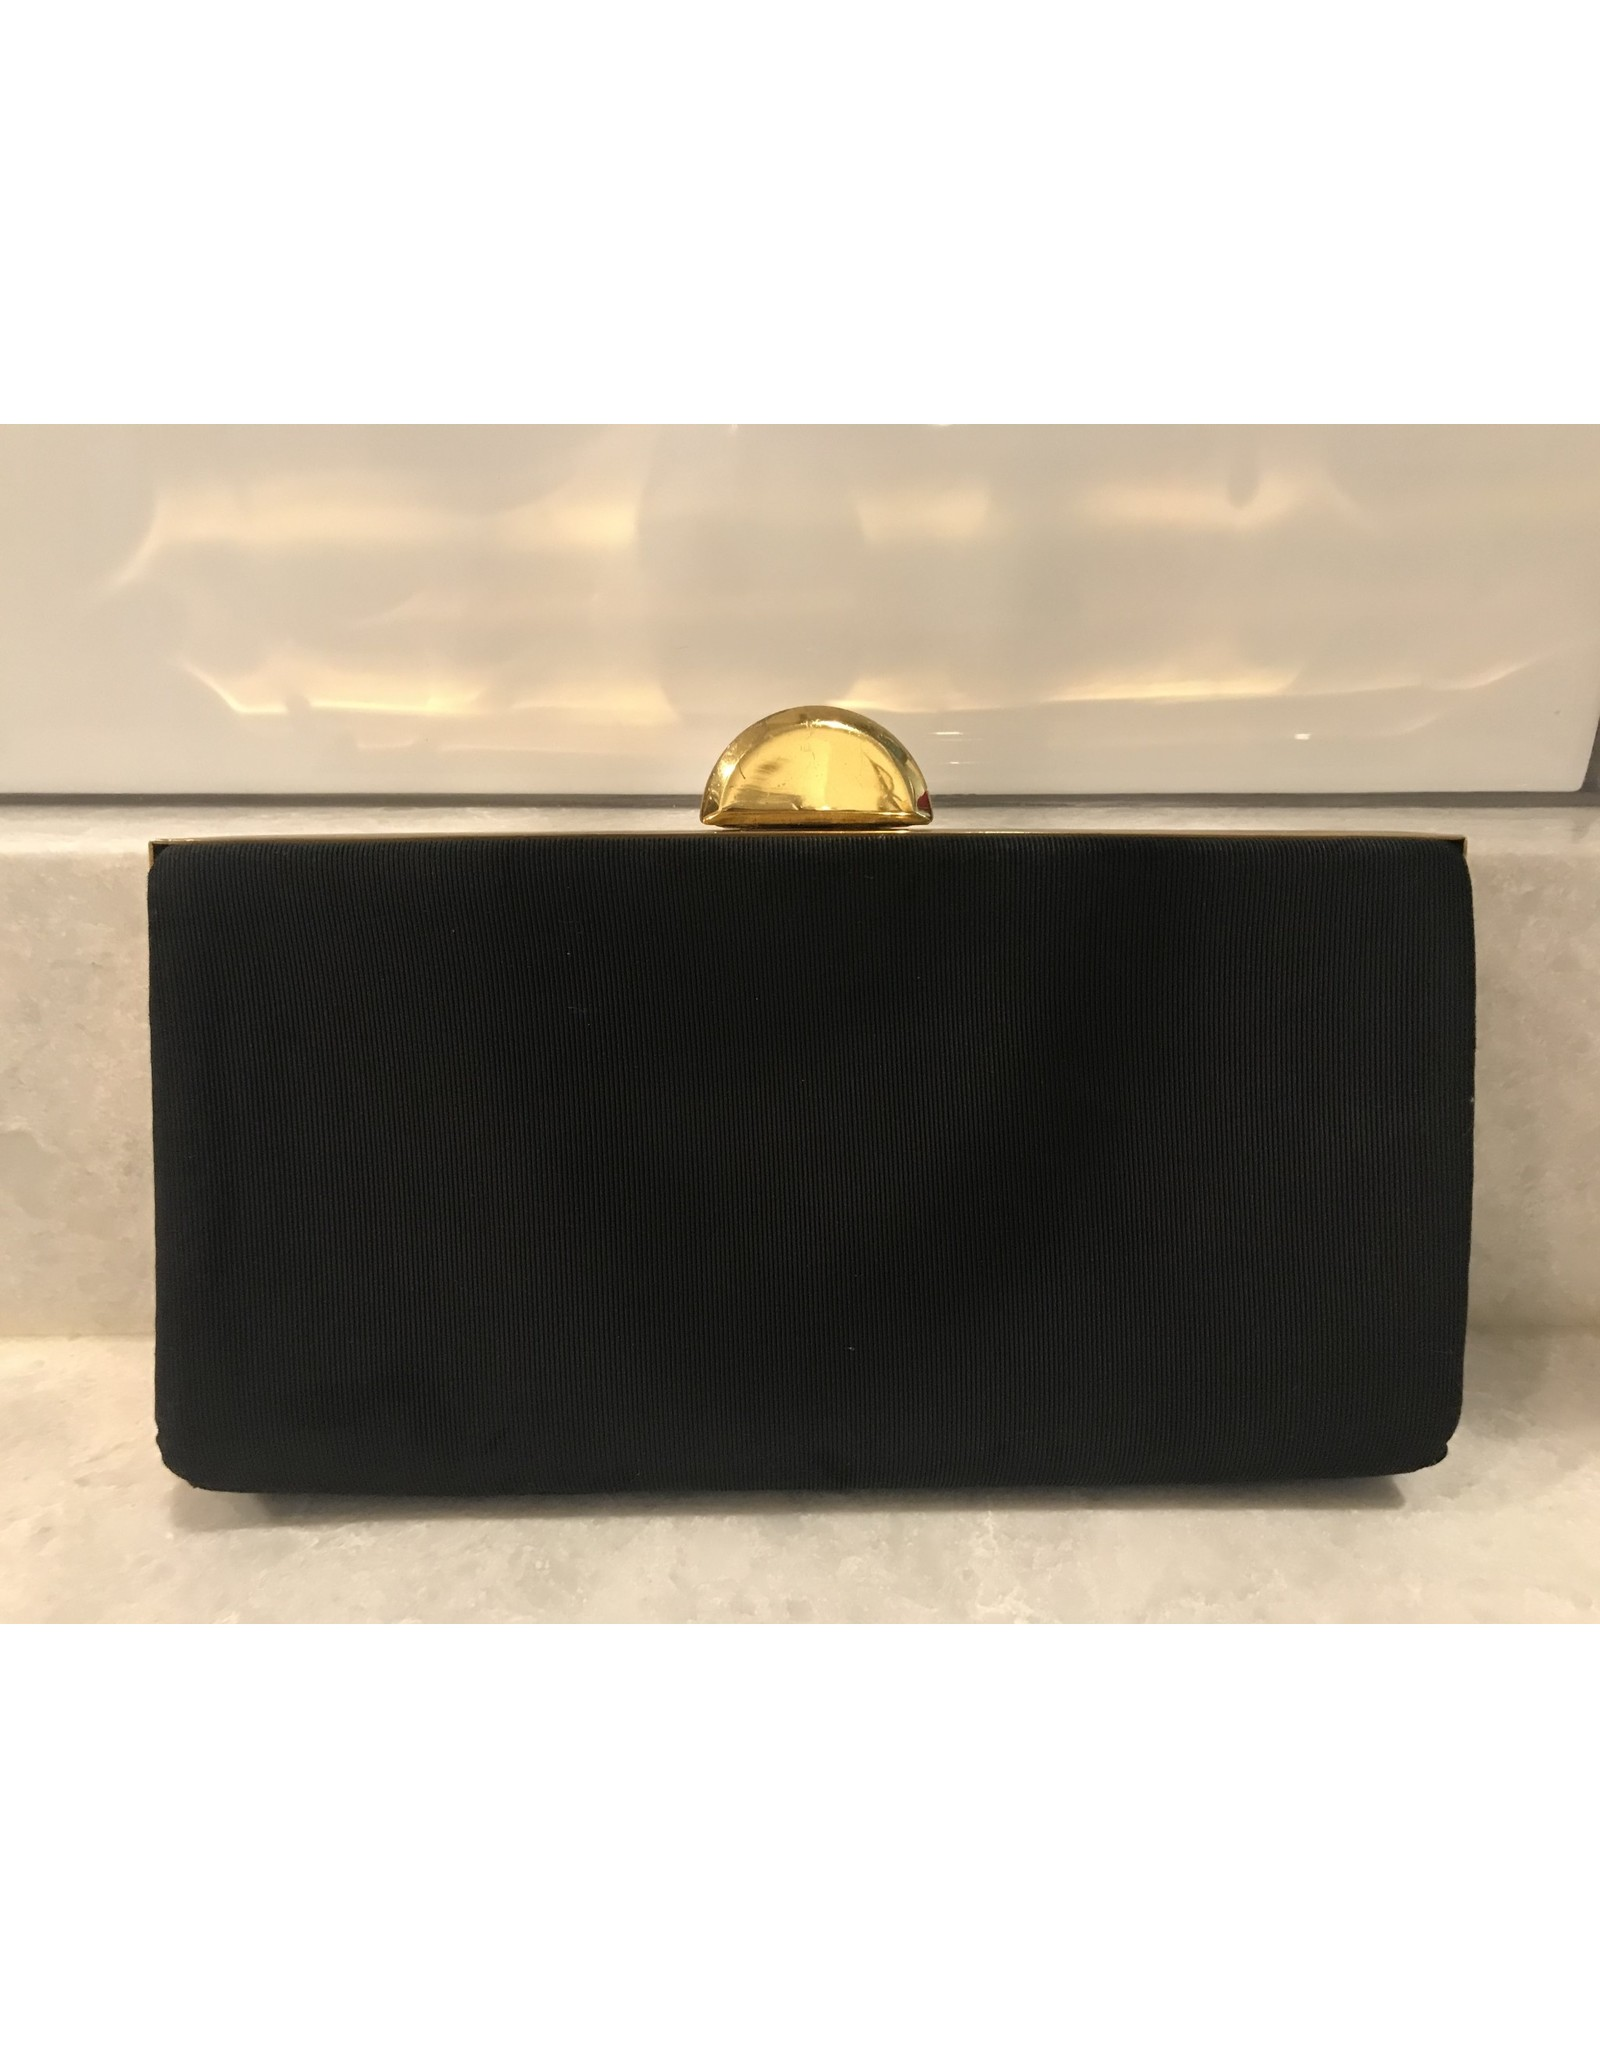 SPV Vintage Art-Deco black and Gold Clutch